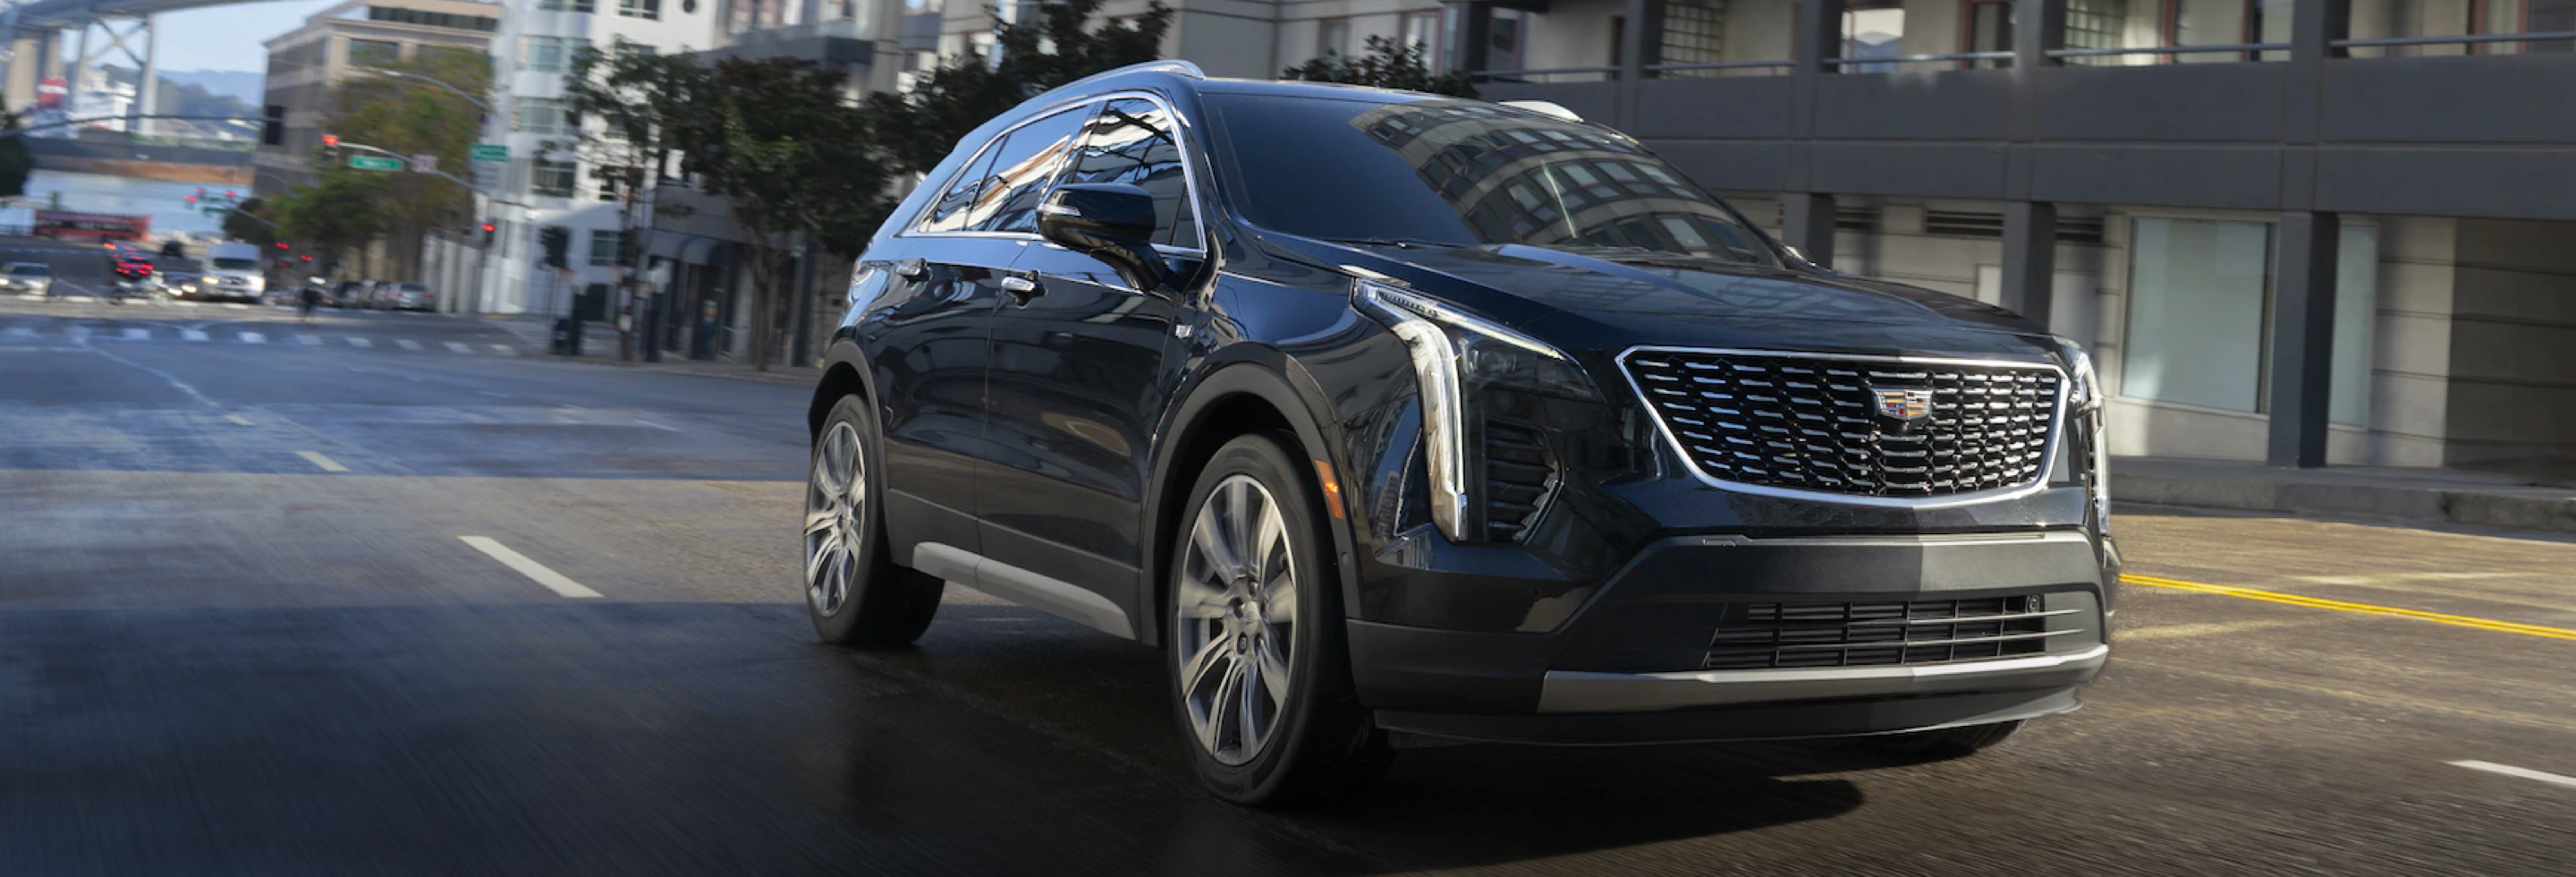 2021 Cadillac XT4 Driving Down City Street